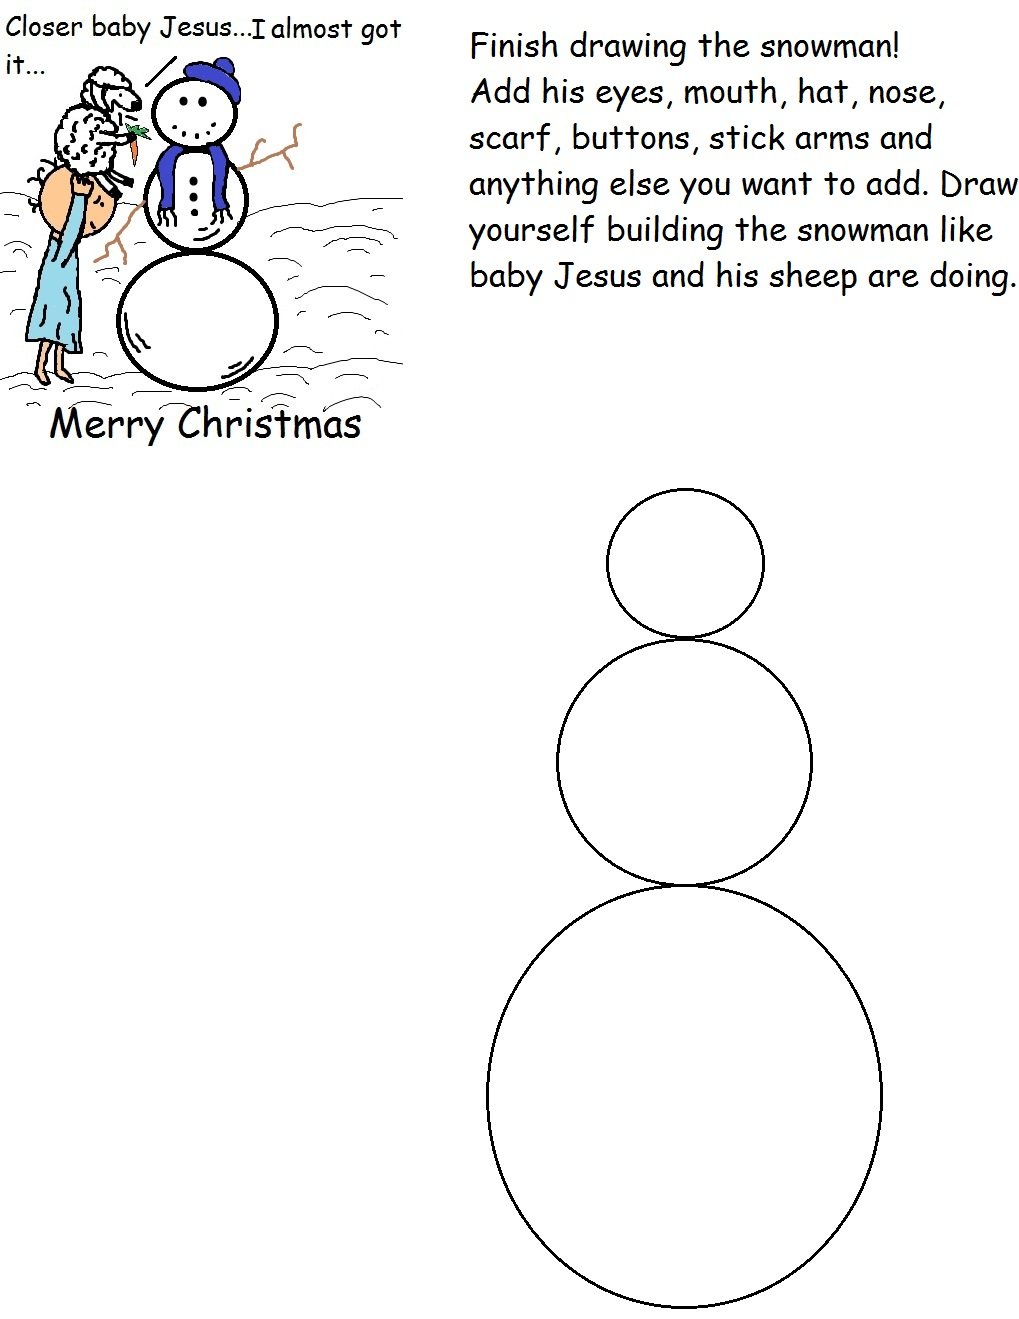 Free Christmas Snowman Activity Worksheet For Preschool Kids in Sunday School. Finish Drawing The Snowman Printable Template by Church House Collection. Use with Free Christmas Sunday School Lessons for kids that we offer.